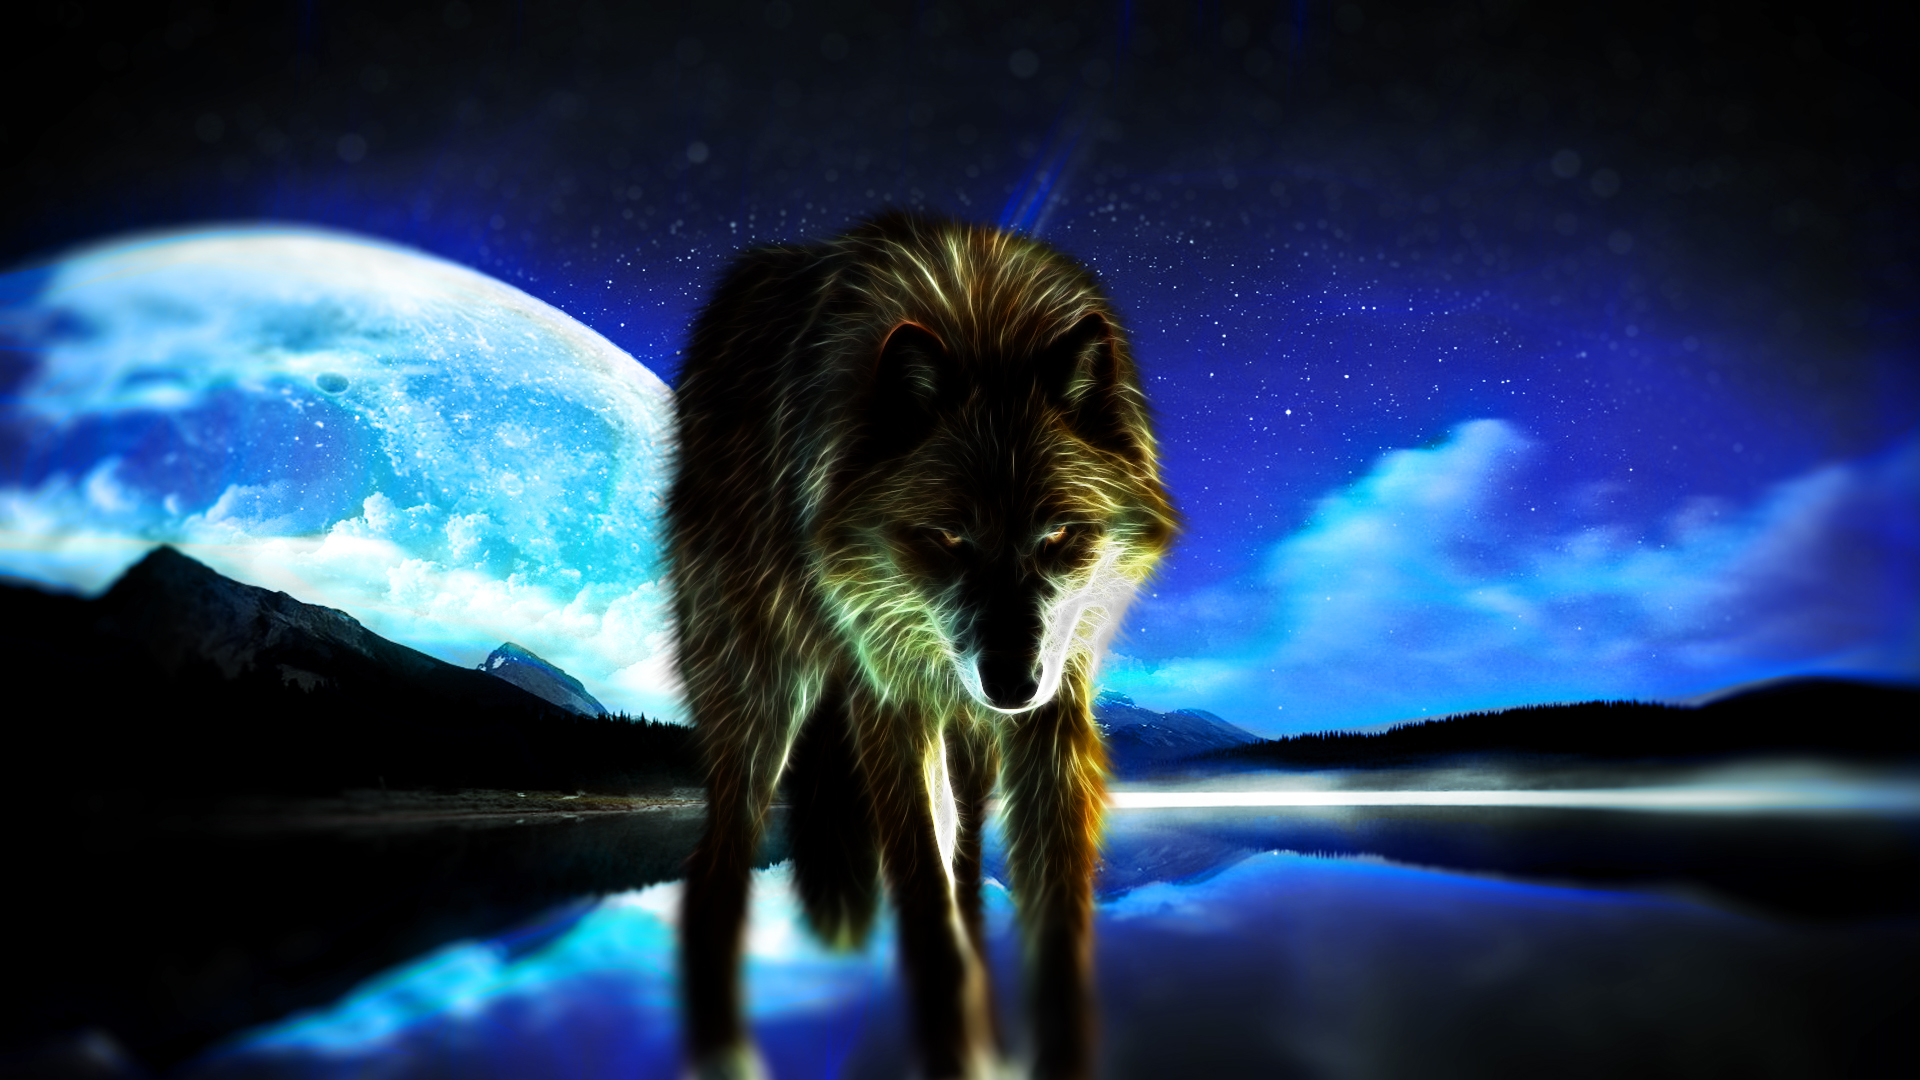 wolf with moon wallpaper by hardii on deviantart